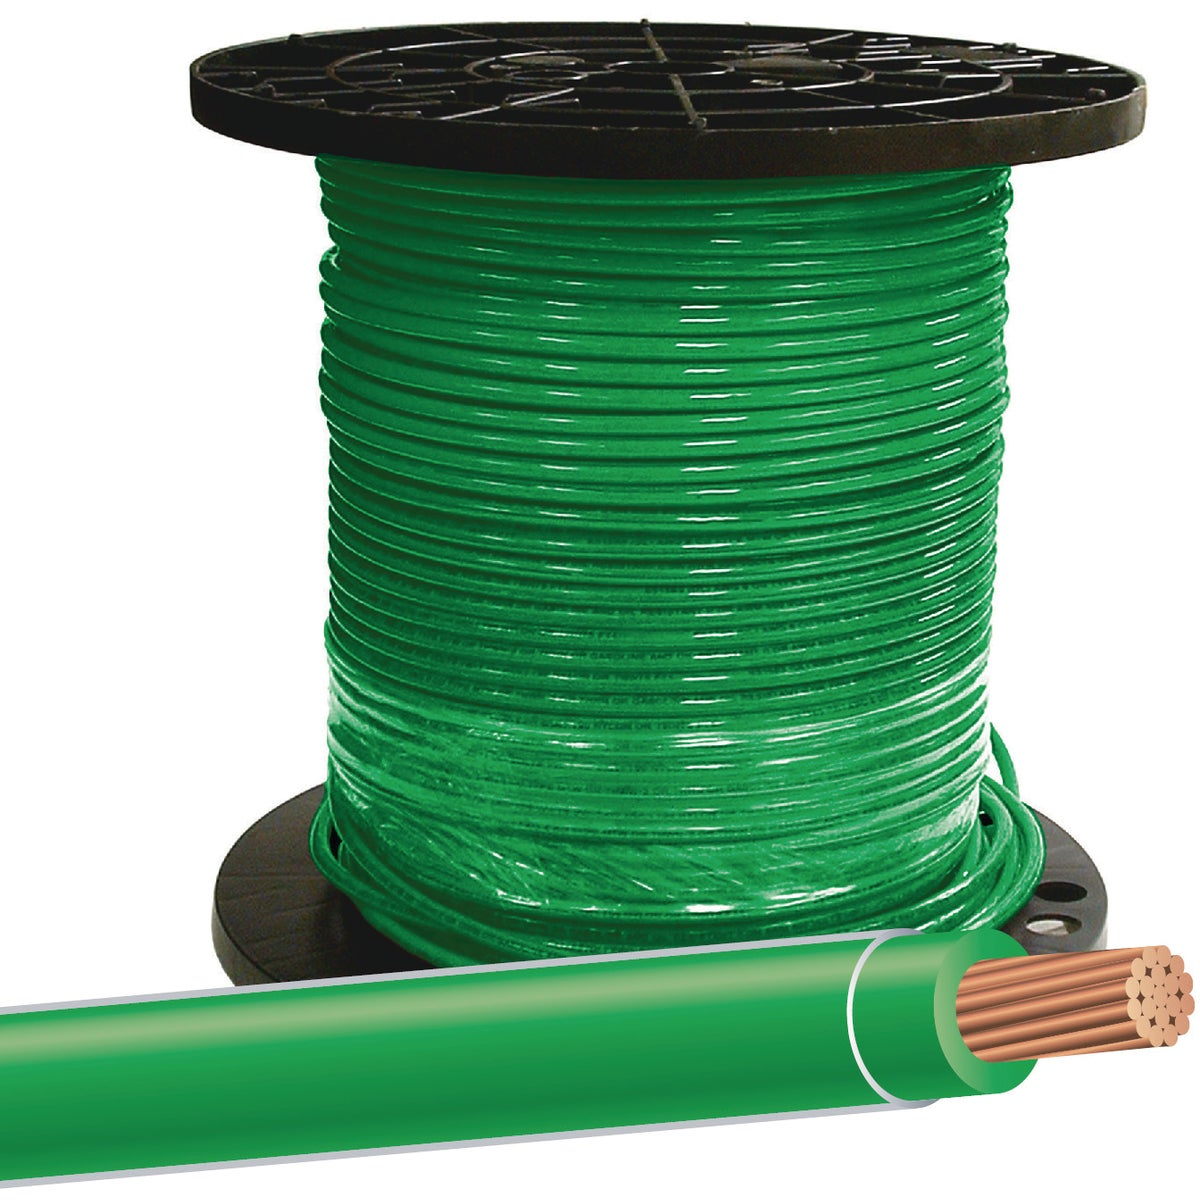 500' 8STR GRN THHN WIRE